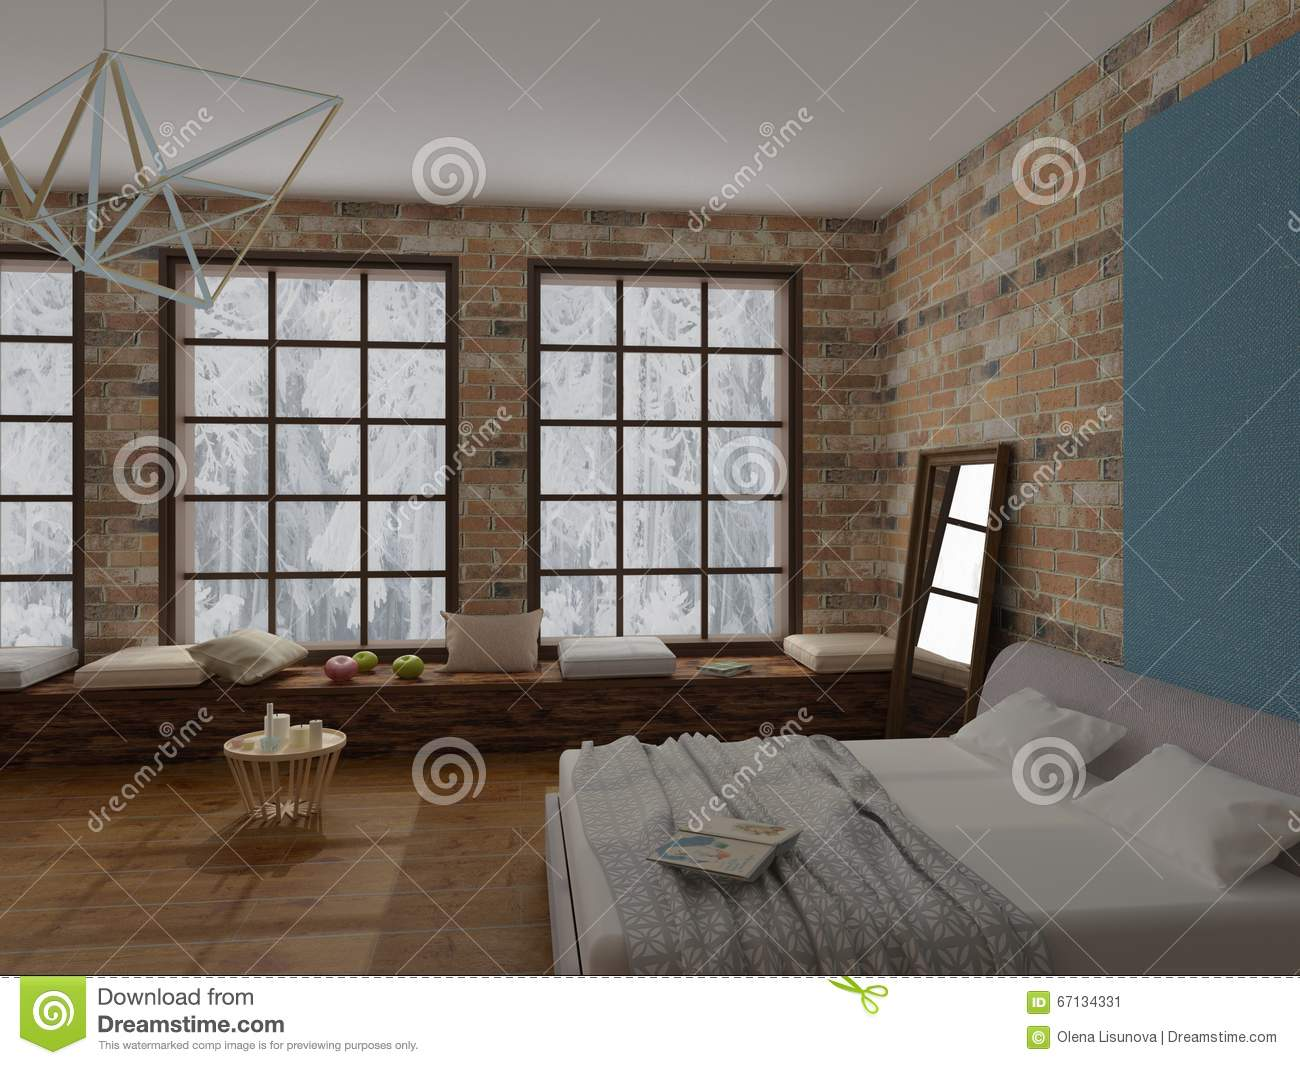 Loft Style Window Mirror Rendering Of Cozy Interior Of Bedroom In Loft Style With